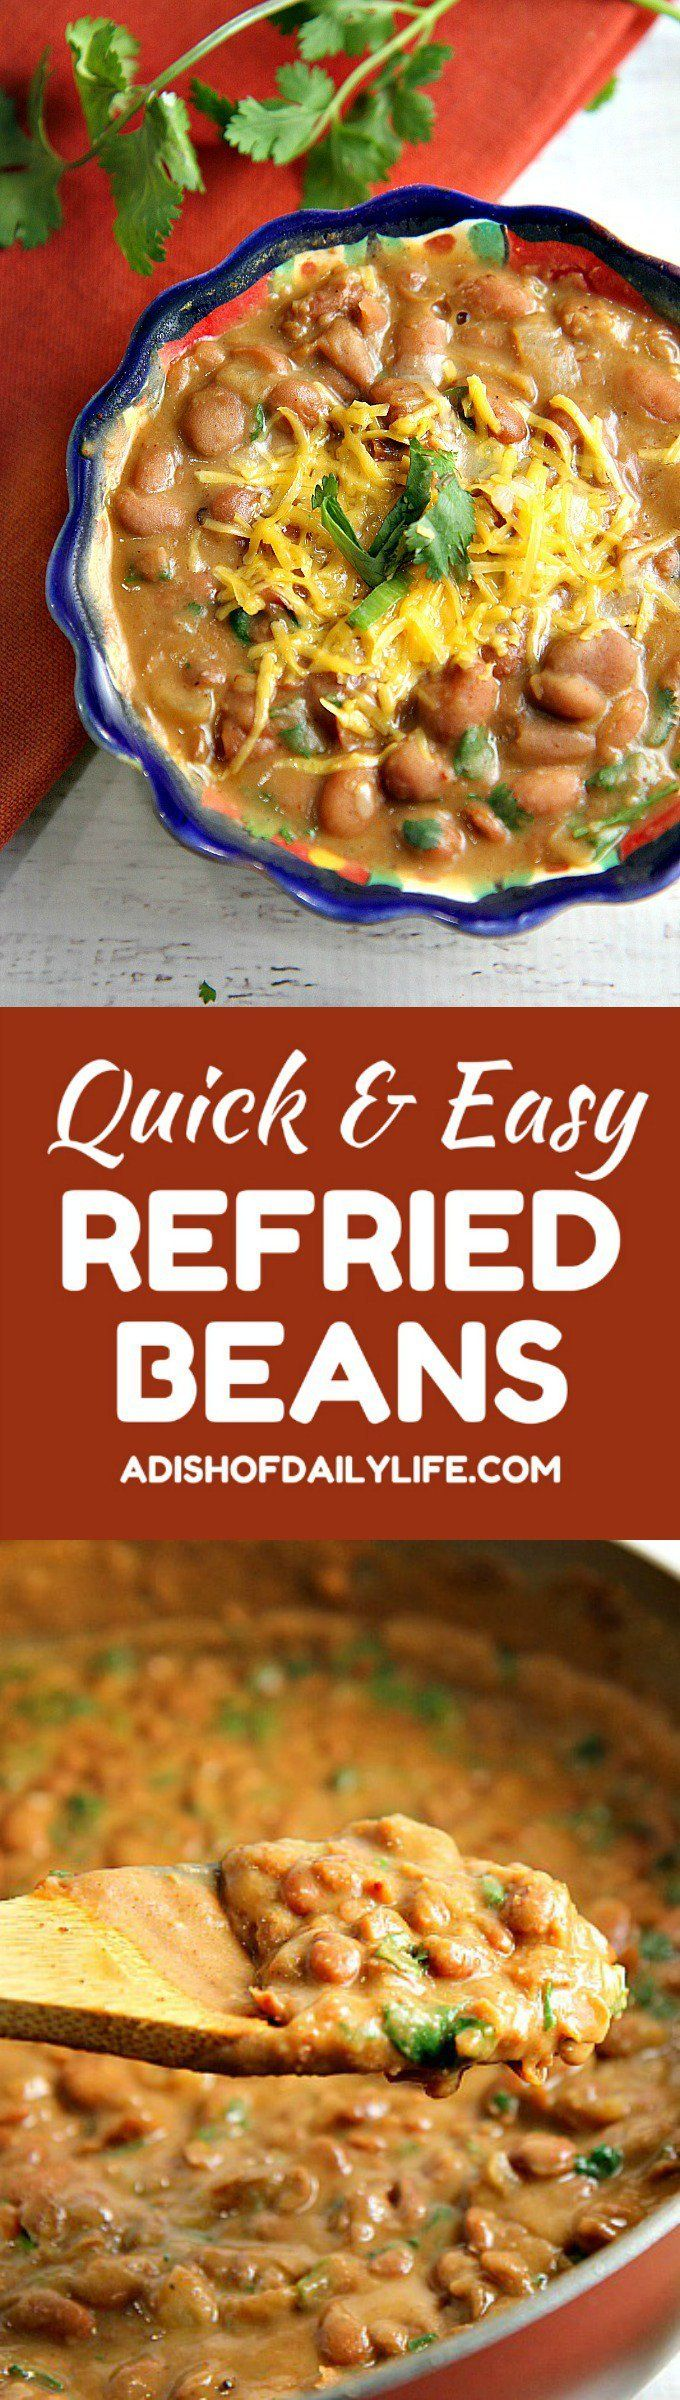 You'll never eat refried beans from a can again after trying this easy homemade refried beans recipe! They only take 15 minutes to make, and they're so versatile...use them as a side dish, as a base for burritos, or in layered bean dip or loaded nachos as well!